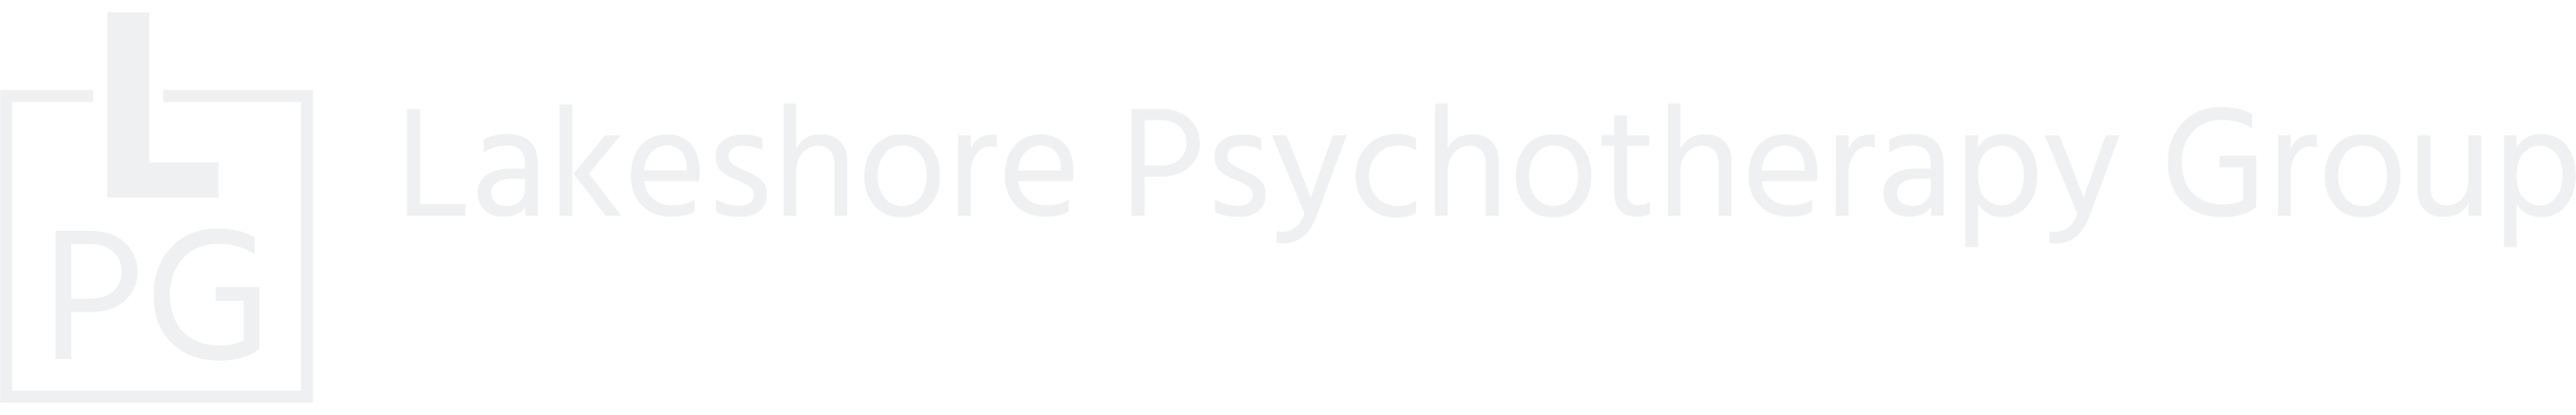 Lakeshore Psychotherapy Group LLC Header Logo